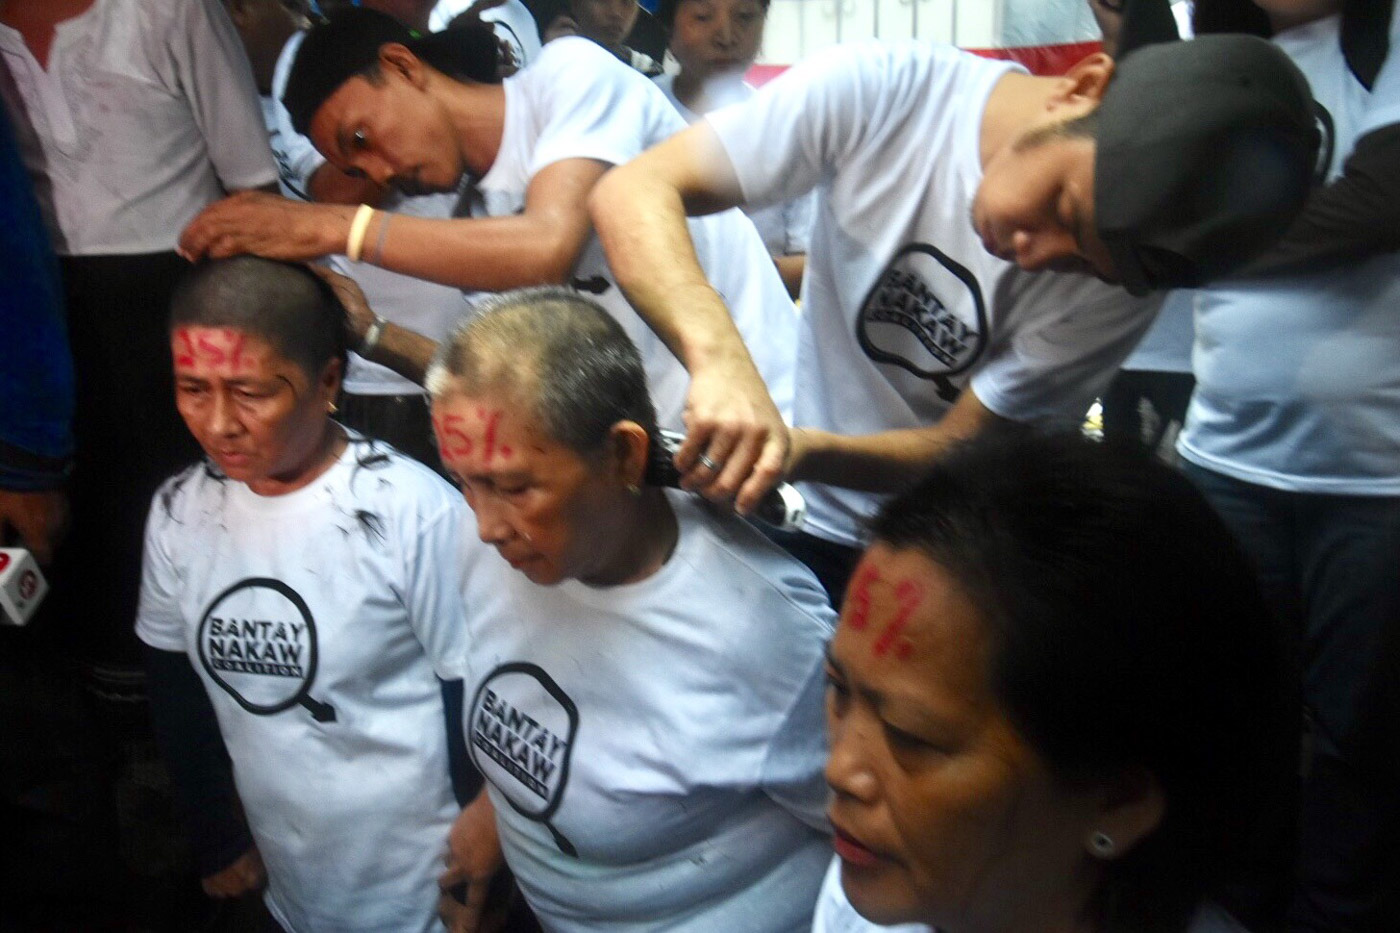 SYMBOLIC HAIRCUT. Members of Bantay Nakaw coalition troop to the Supreme Court amid the rain on June 11, 2018, to shave their heads in protest of the 50% shading threshold applied by the Presidential Electoral Tribunal. Photo by Angie de Silva/Rappler